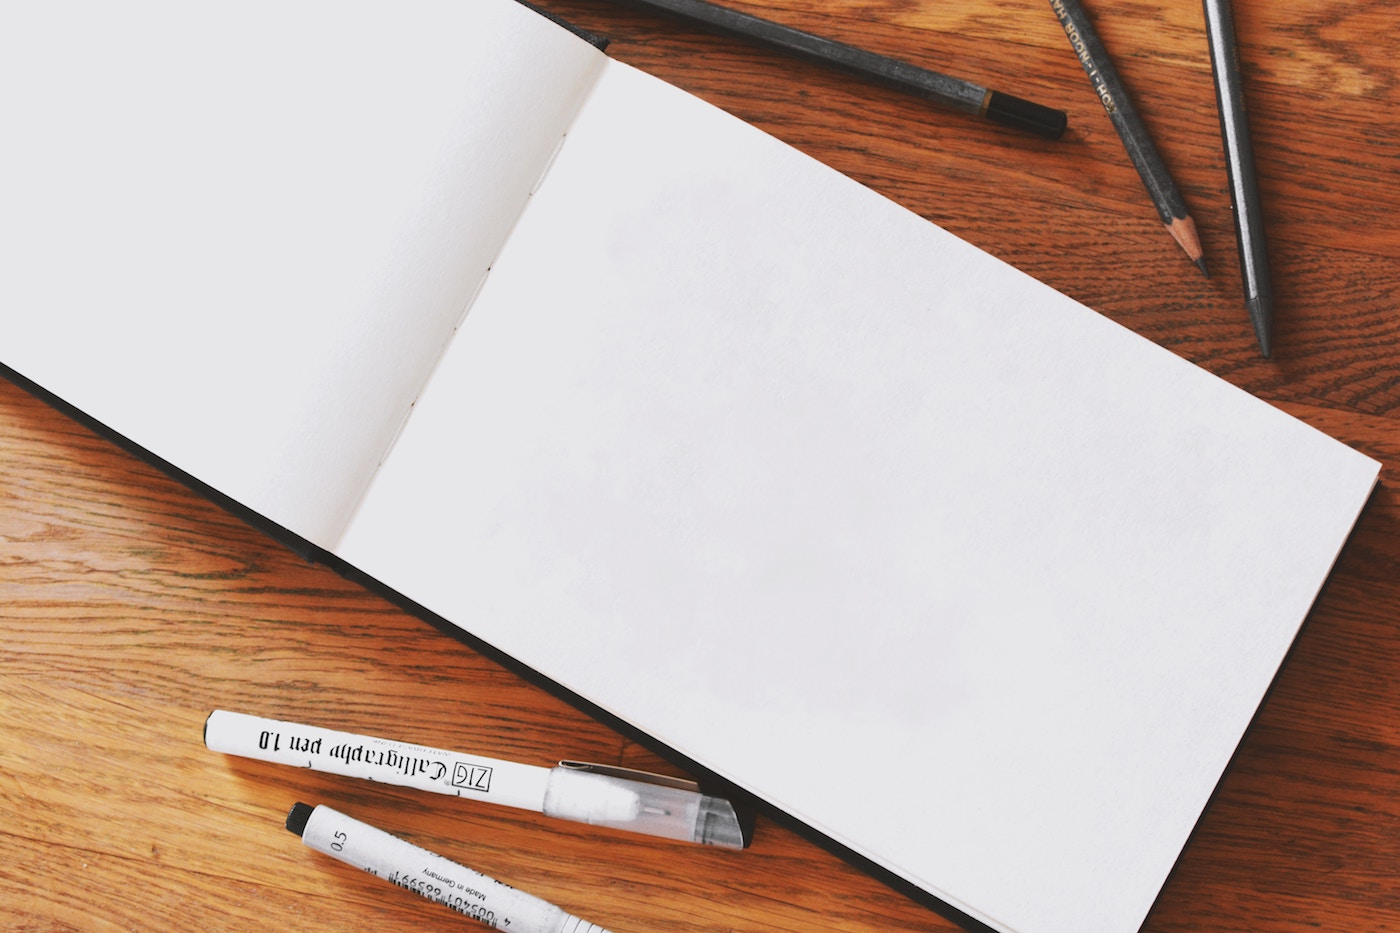 How to start a sketchbook